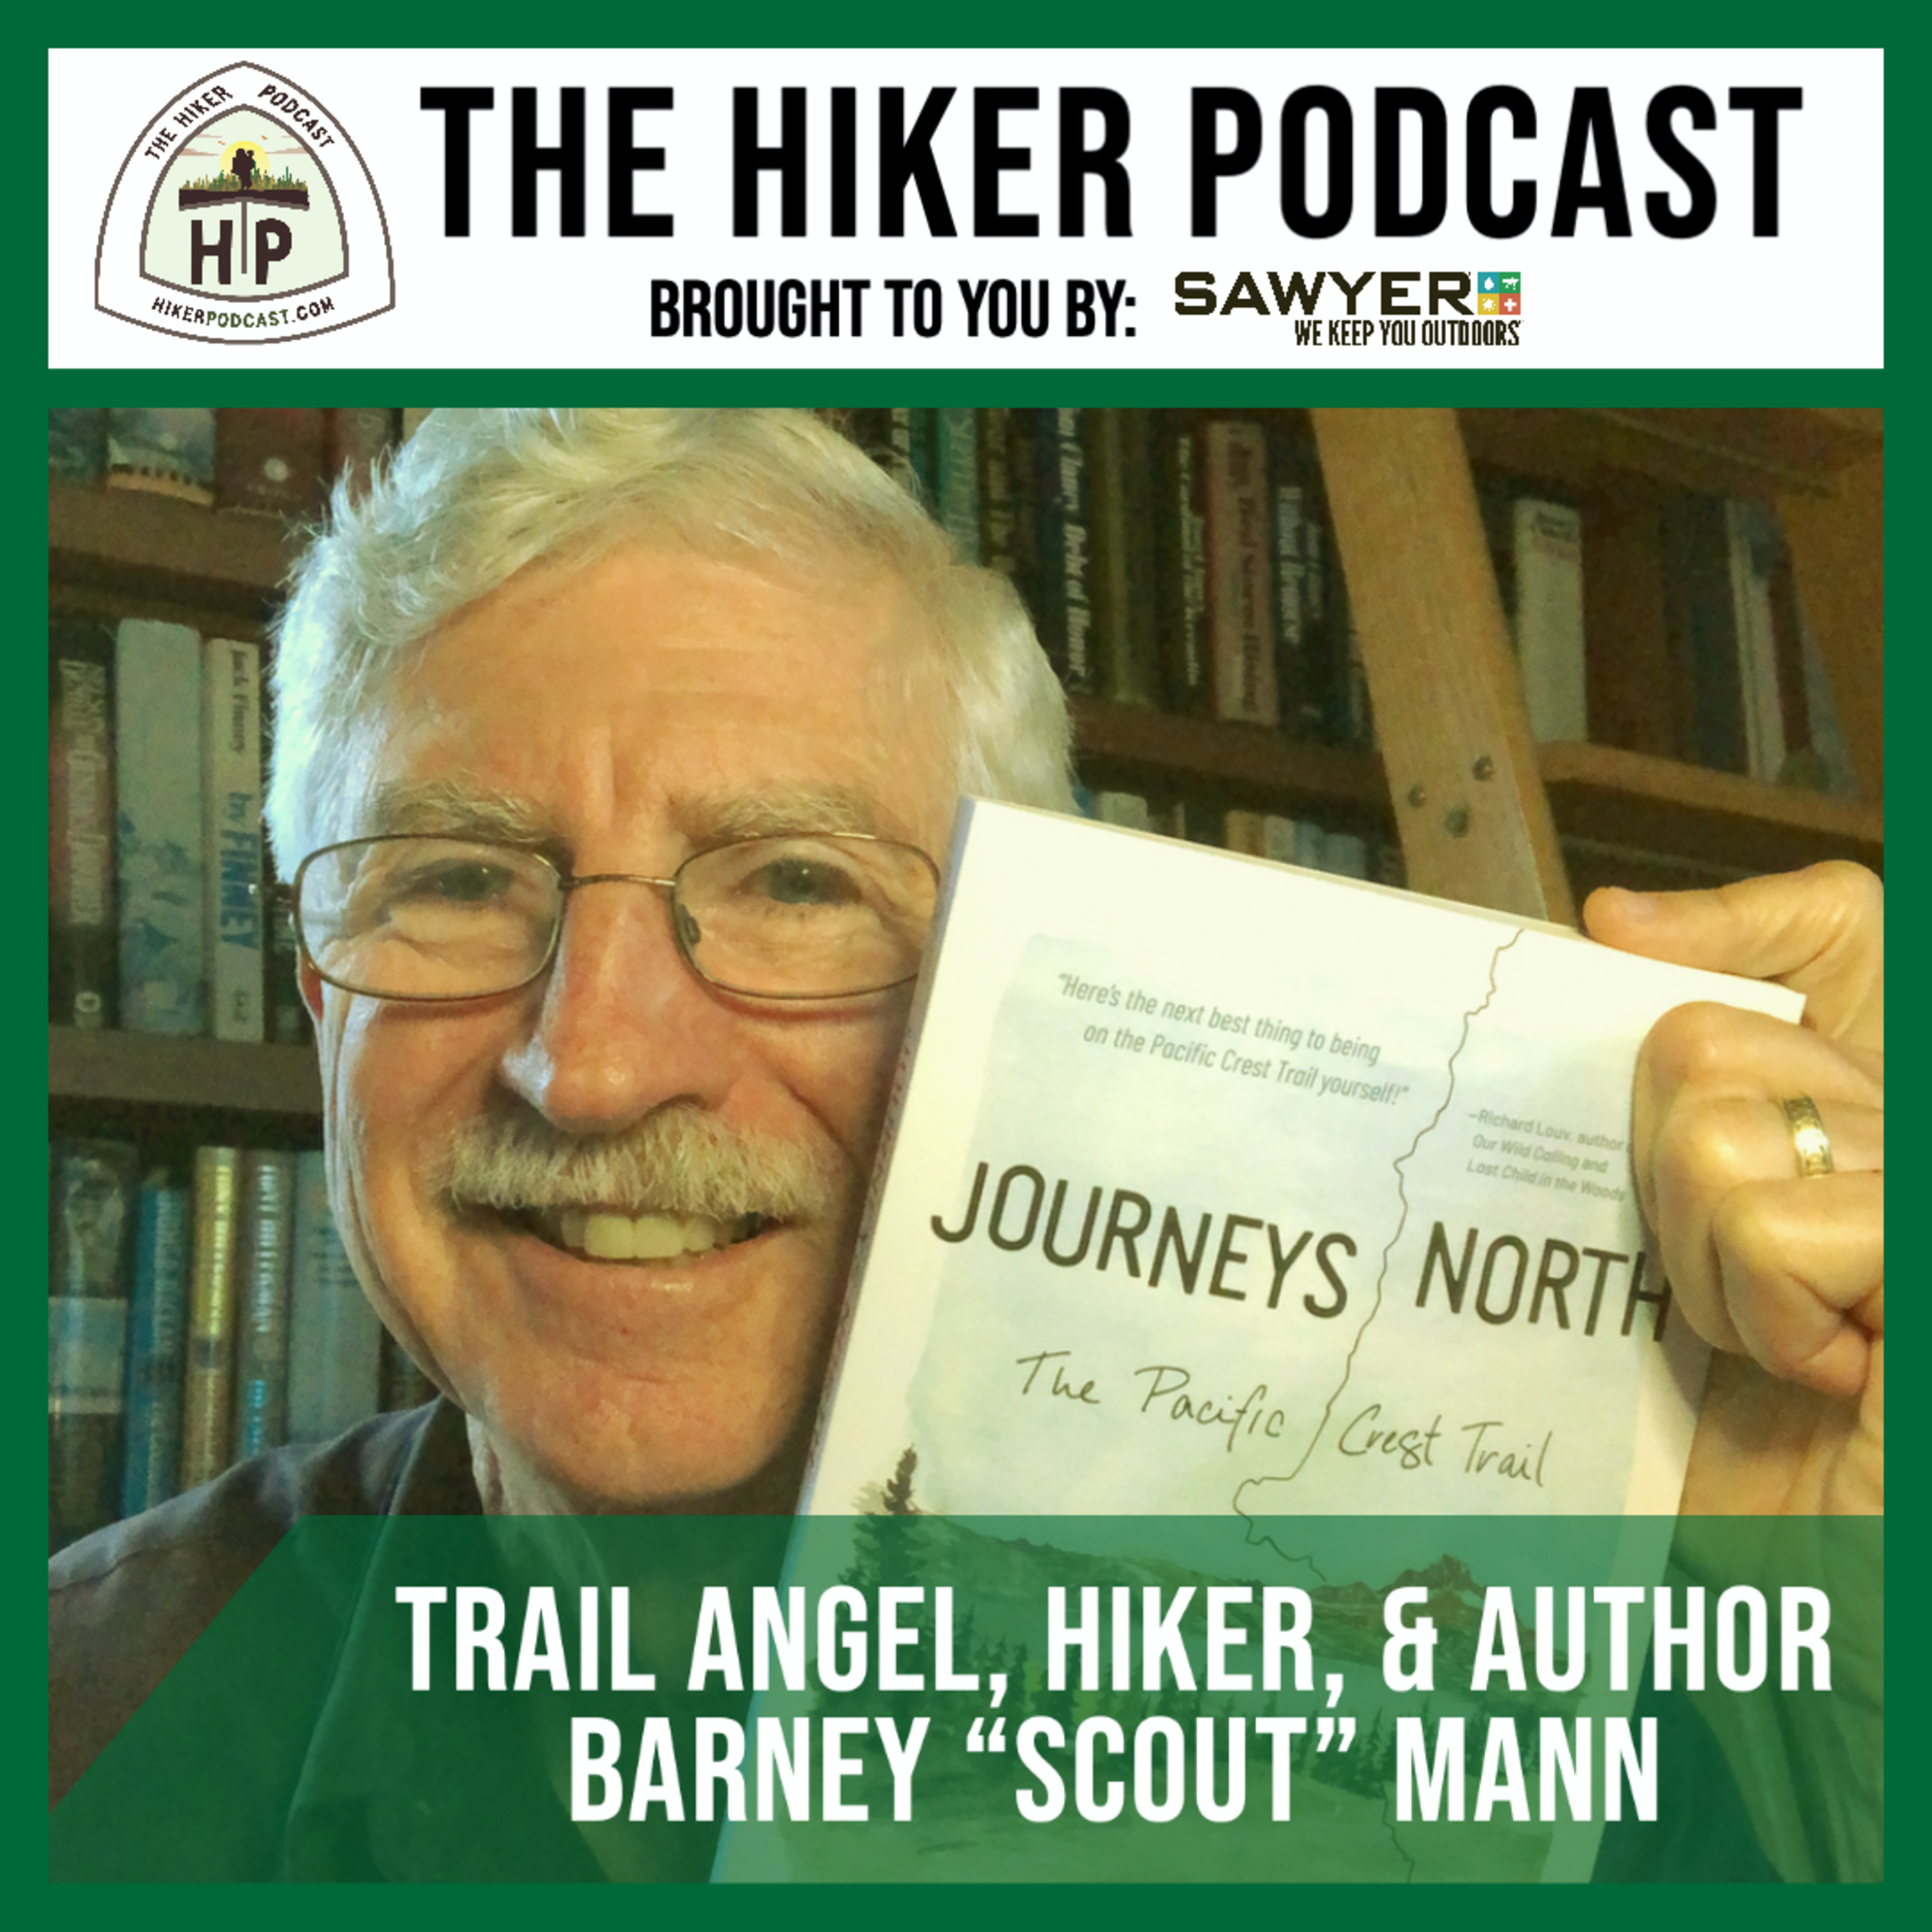 """BARNEY """"SCOUT"""" MANN: Trail Angel, Hiker, & Author 